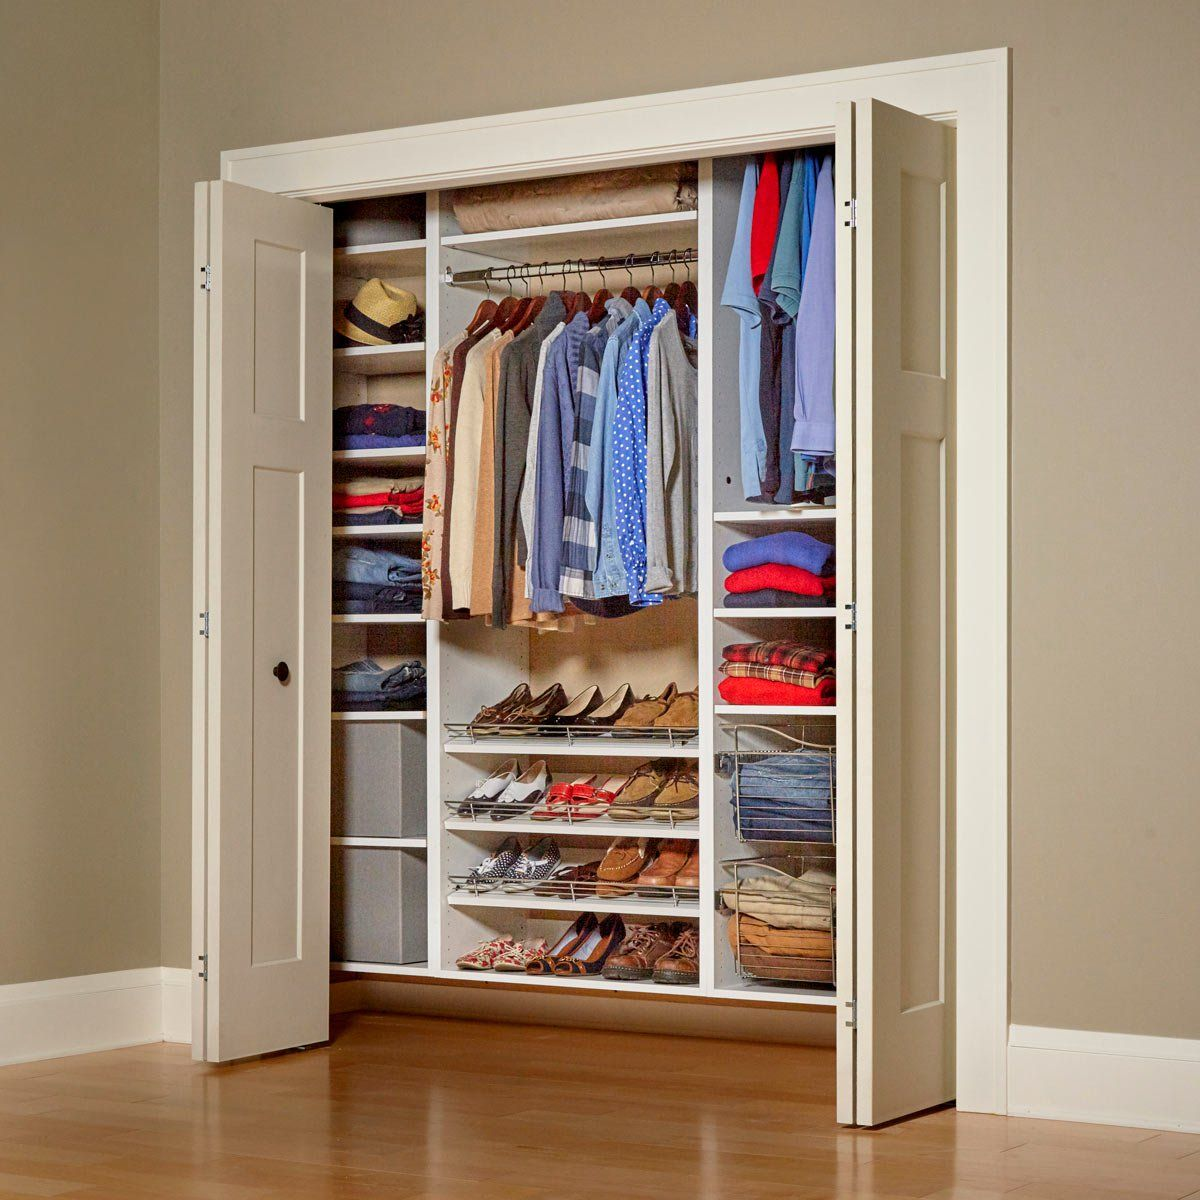 Build your own melamine closet organizer with images